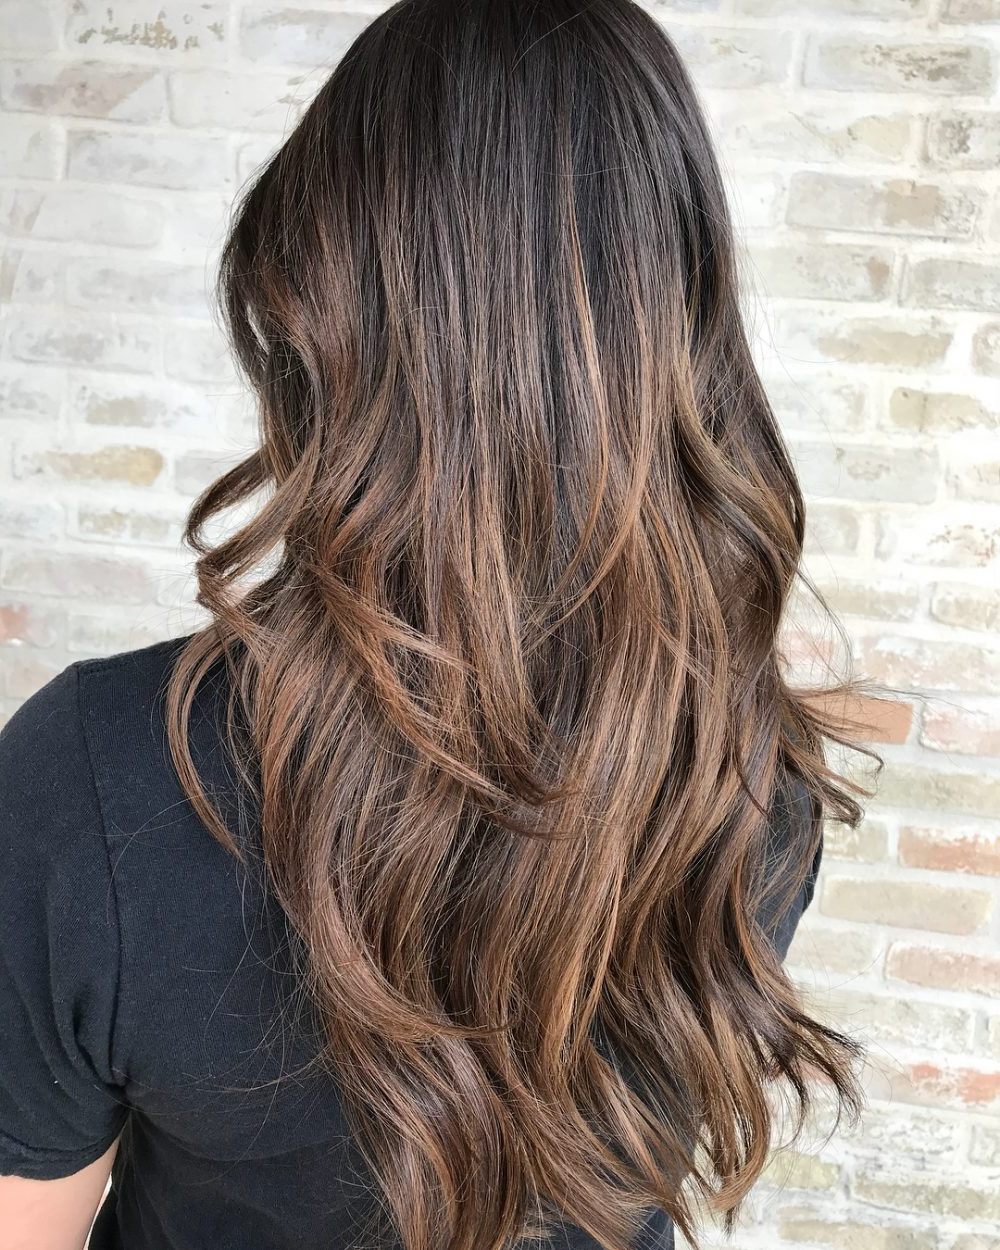 55 Perfect Hairstyles For Thick Hair (Popular For 2018) With Regard To Layered Haircuts For Thick Hair (View 10 of 20)